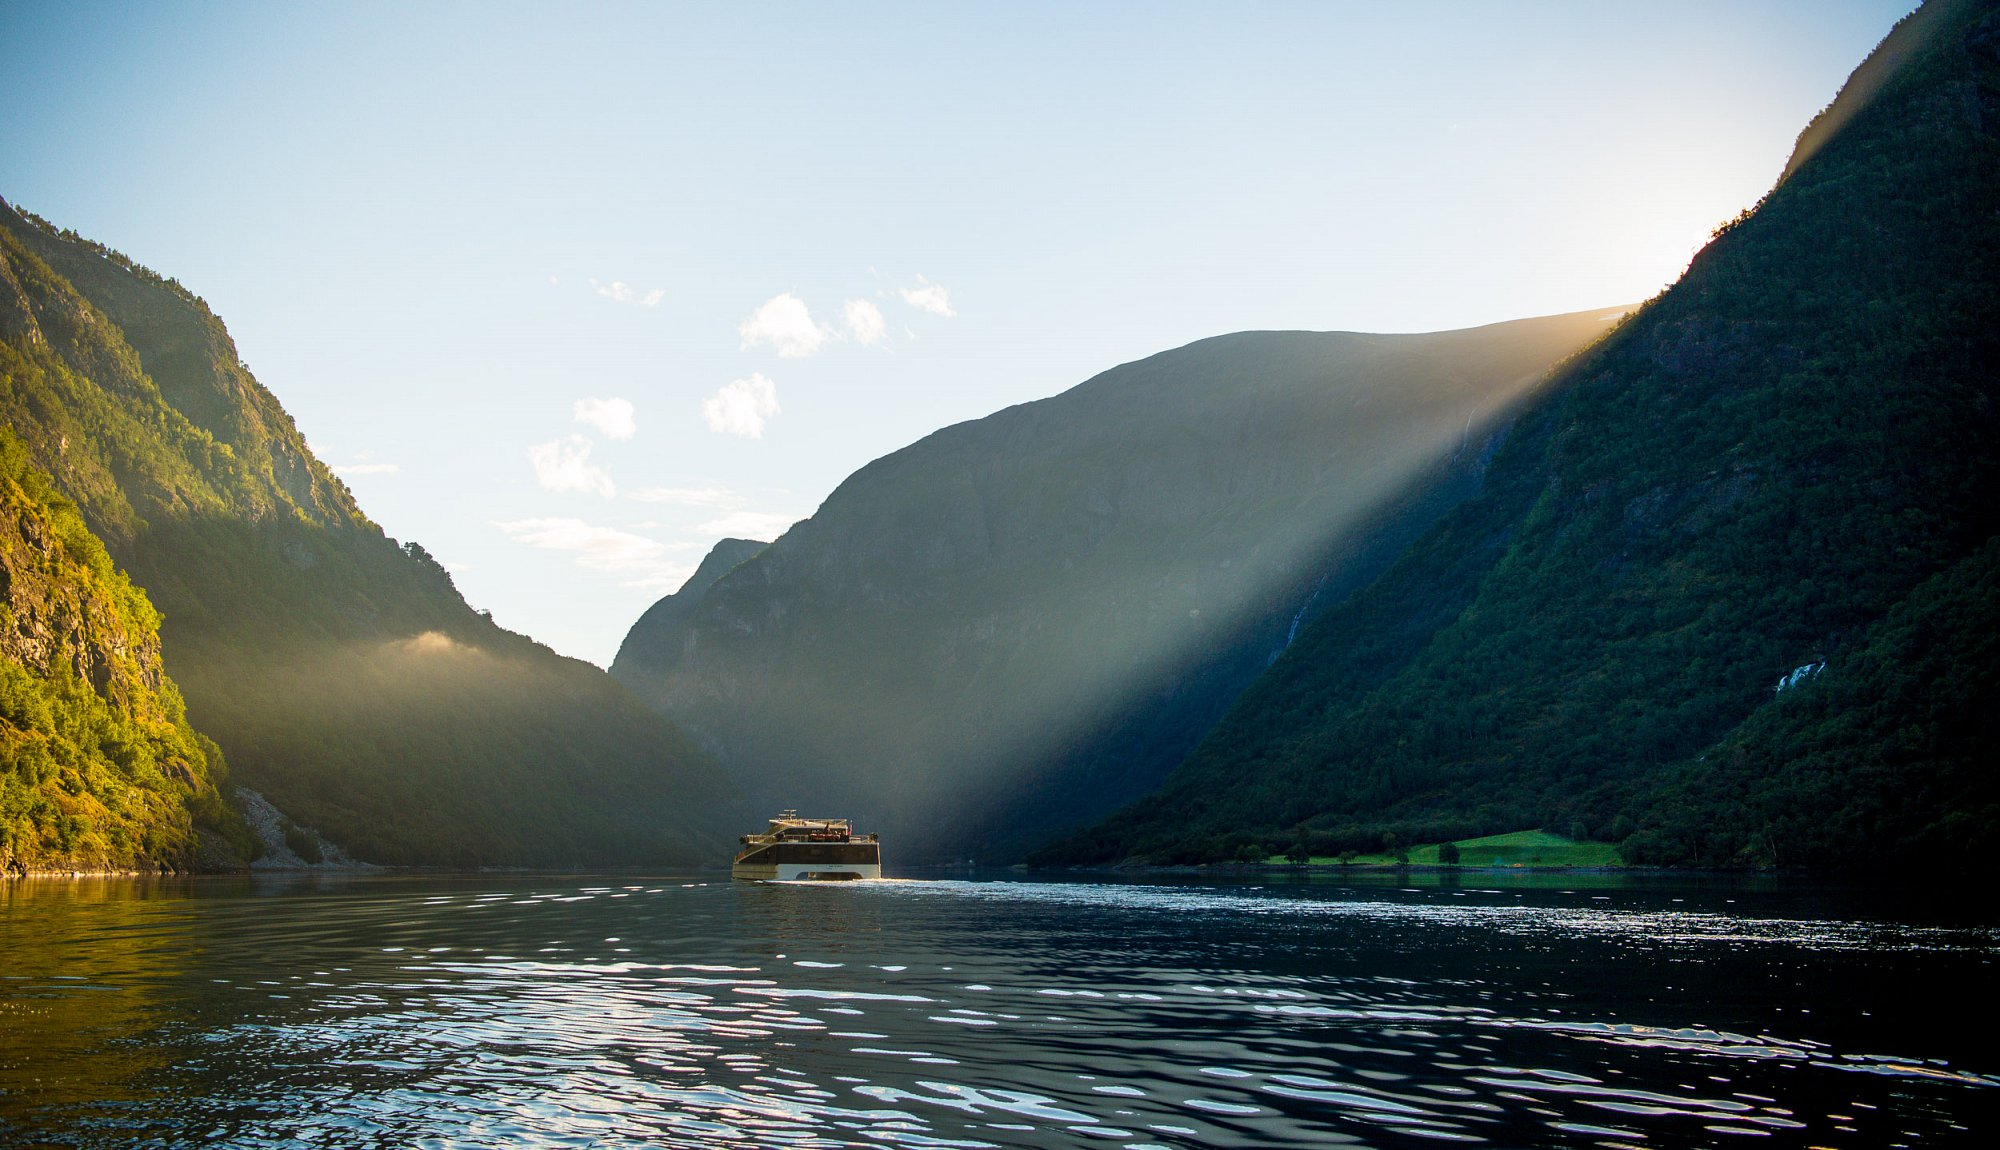 UNESCO World Heritage landscape in one of the most popular fjord areas in Norway.